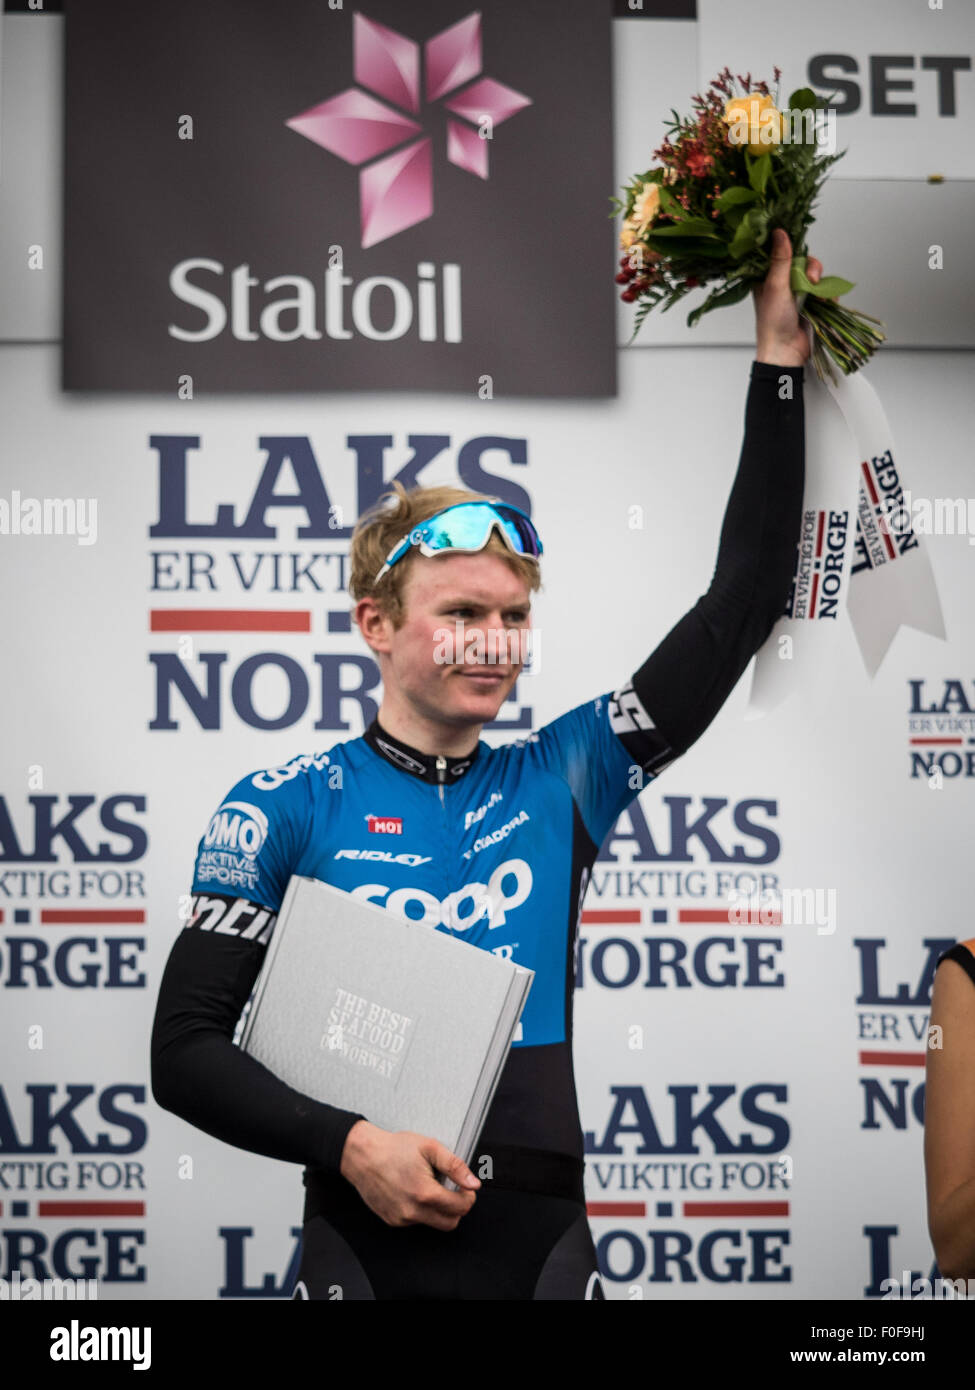 Setermoen, Norway. 14th August 2015. August Jensen from Norway cycling for Team COOP-Osterhus was awarded the climbers - Stock Image